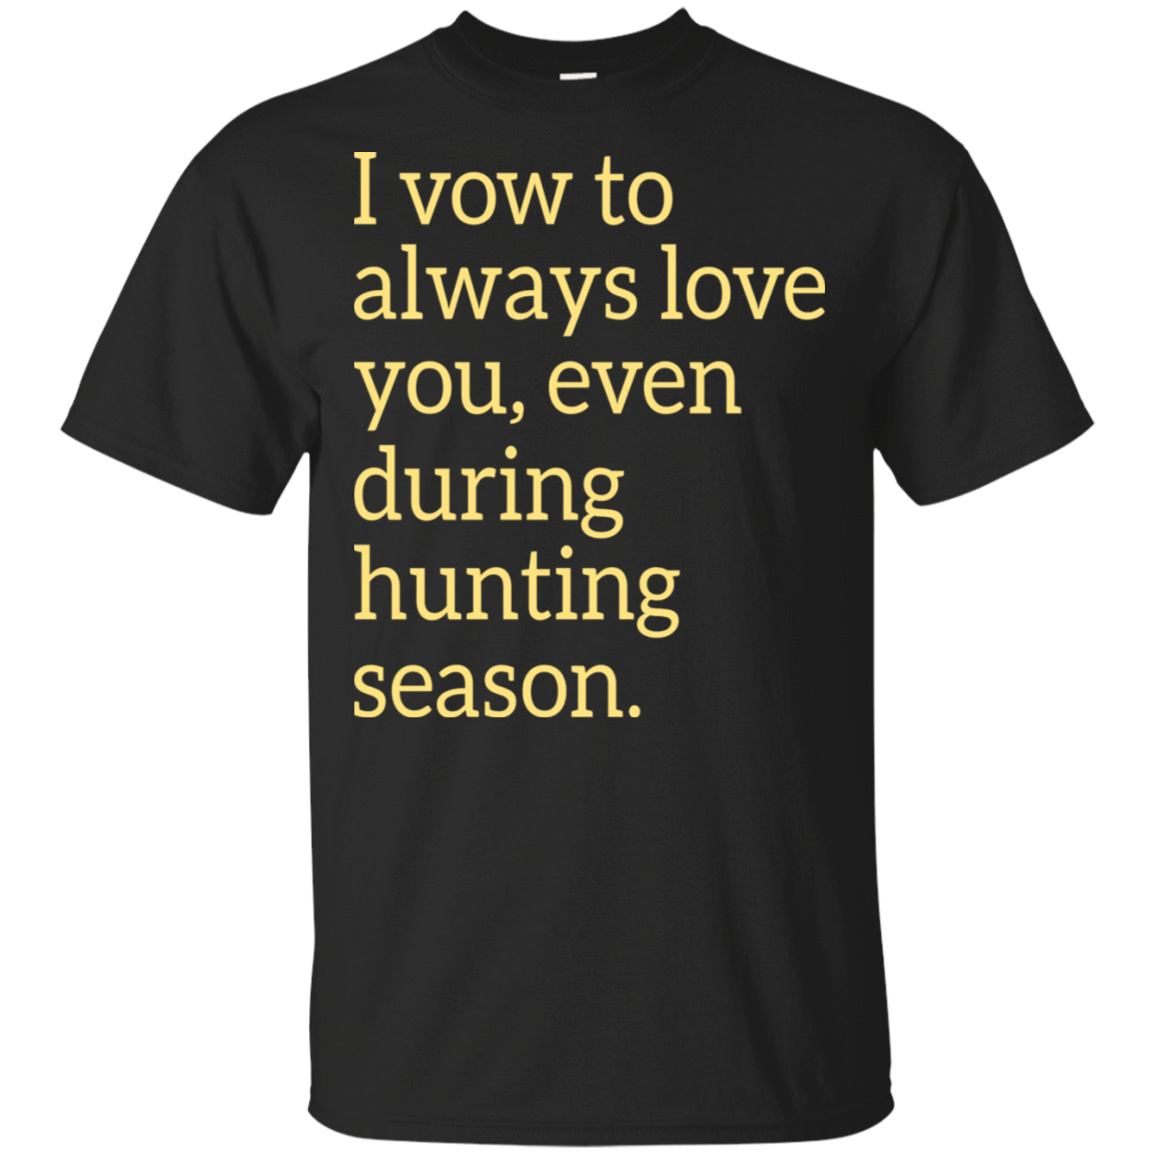 I Vow To Always Love You Even During Hunting Season 22-113-73426319-252 - Tee Ript